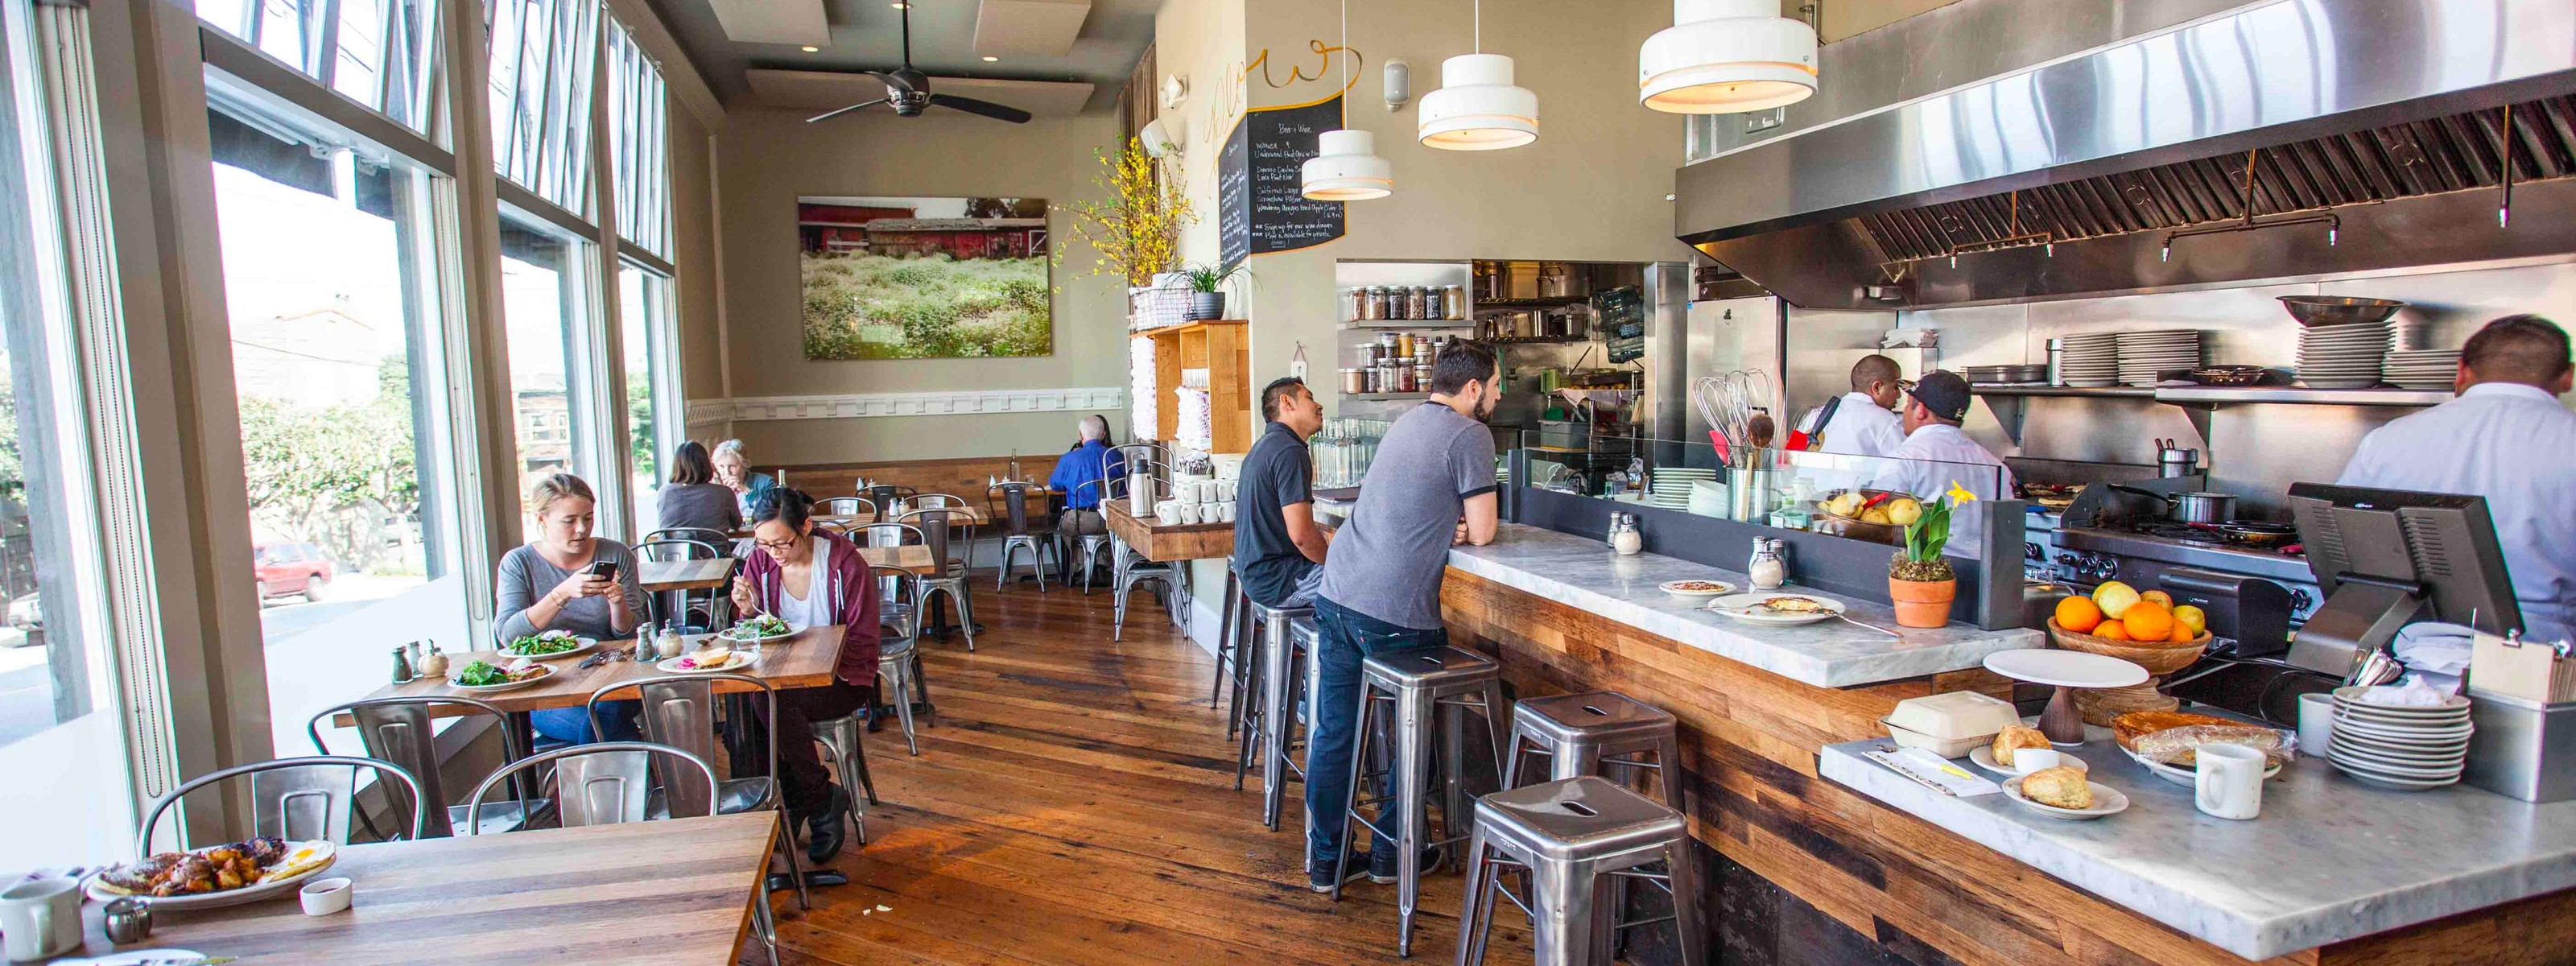 The San Francisco Brunch Directory - San Francisco - The Infatuation